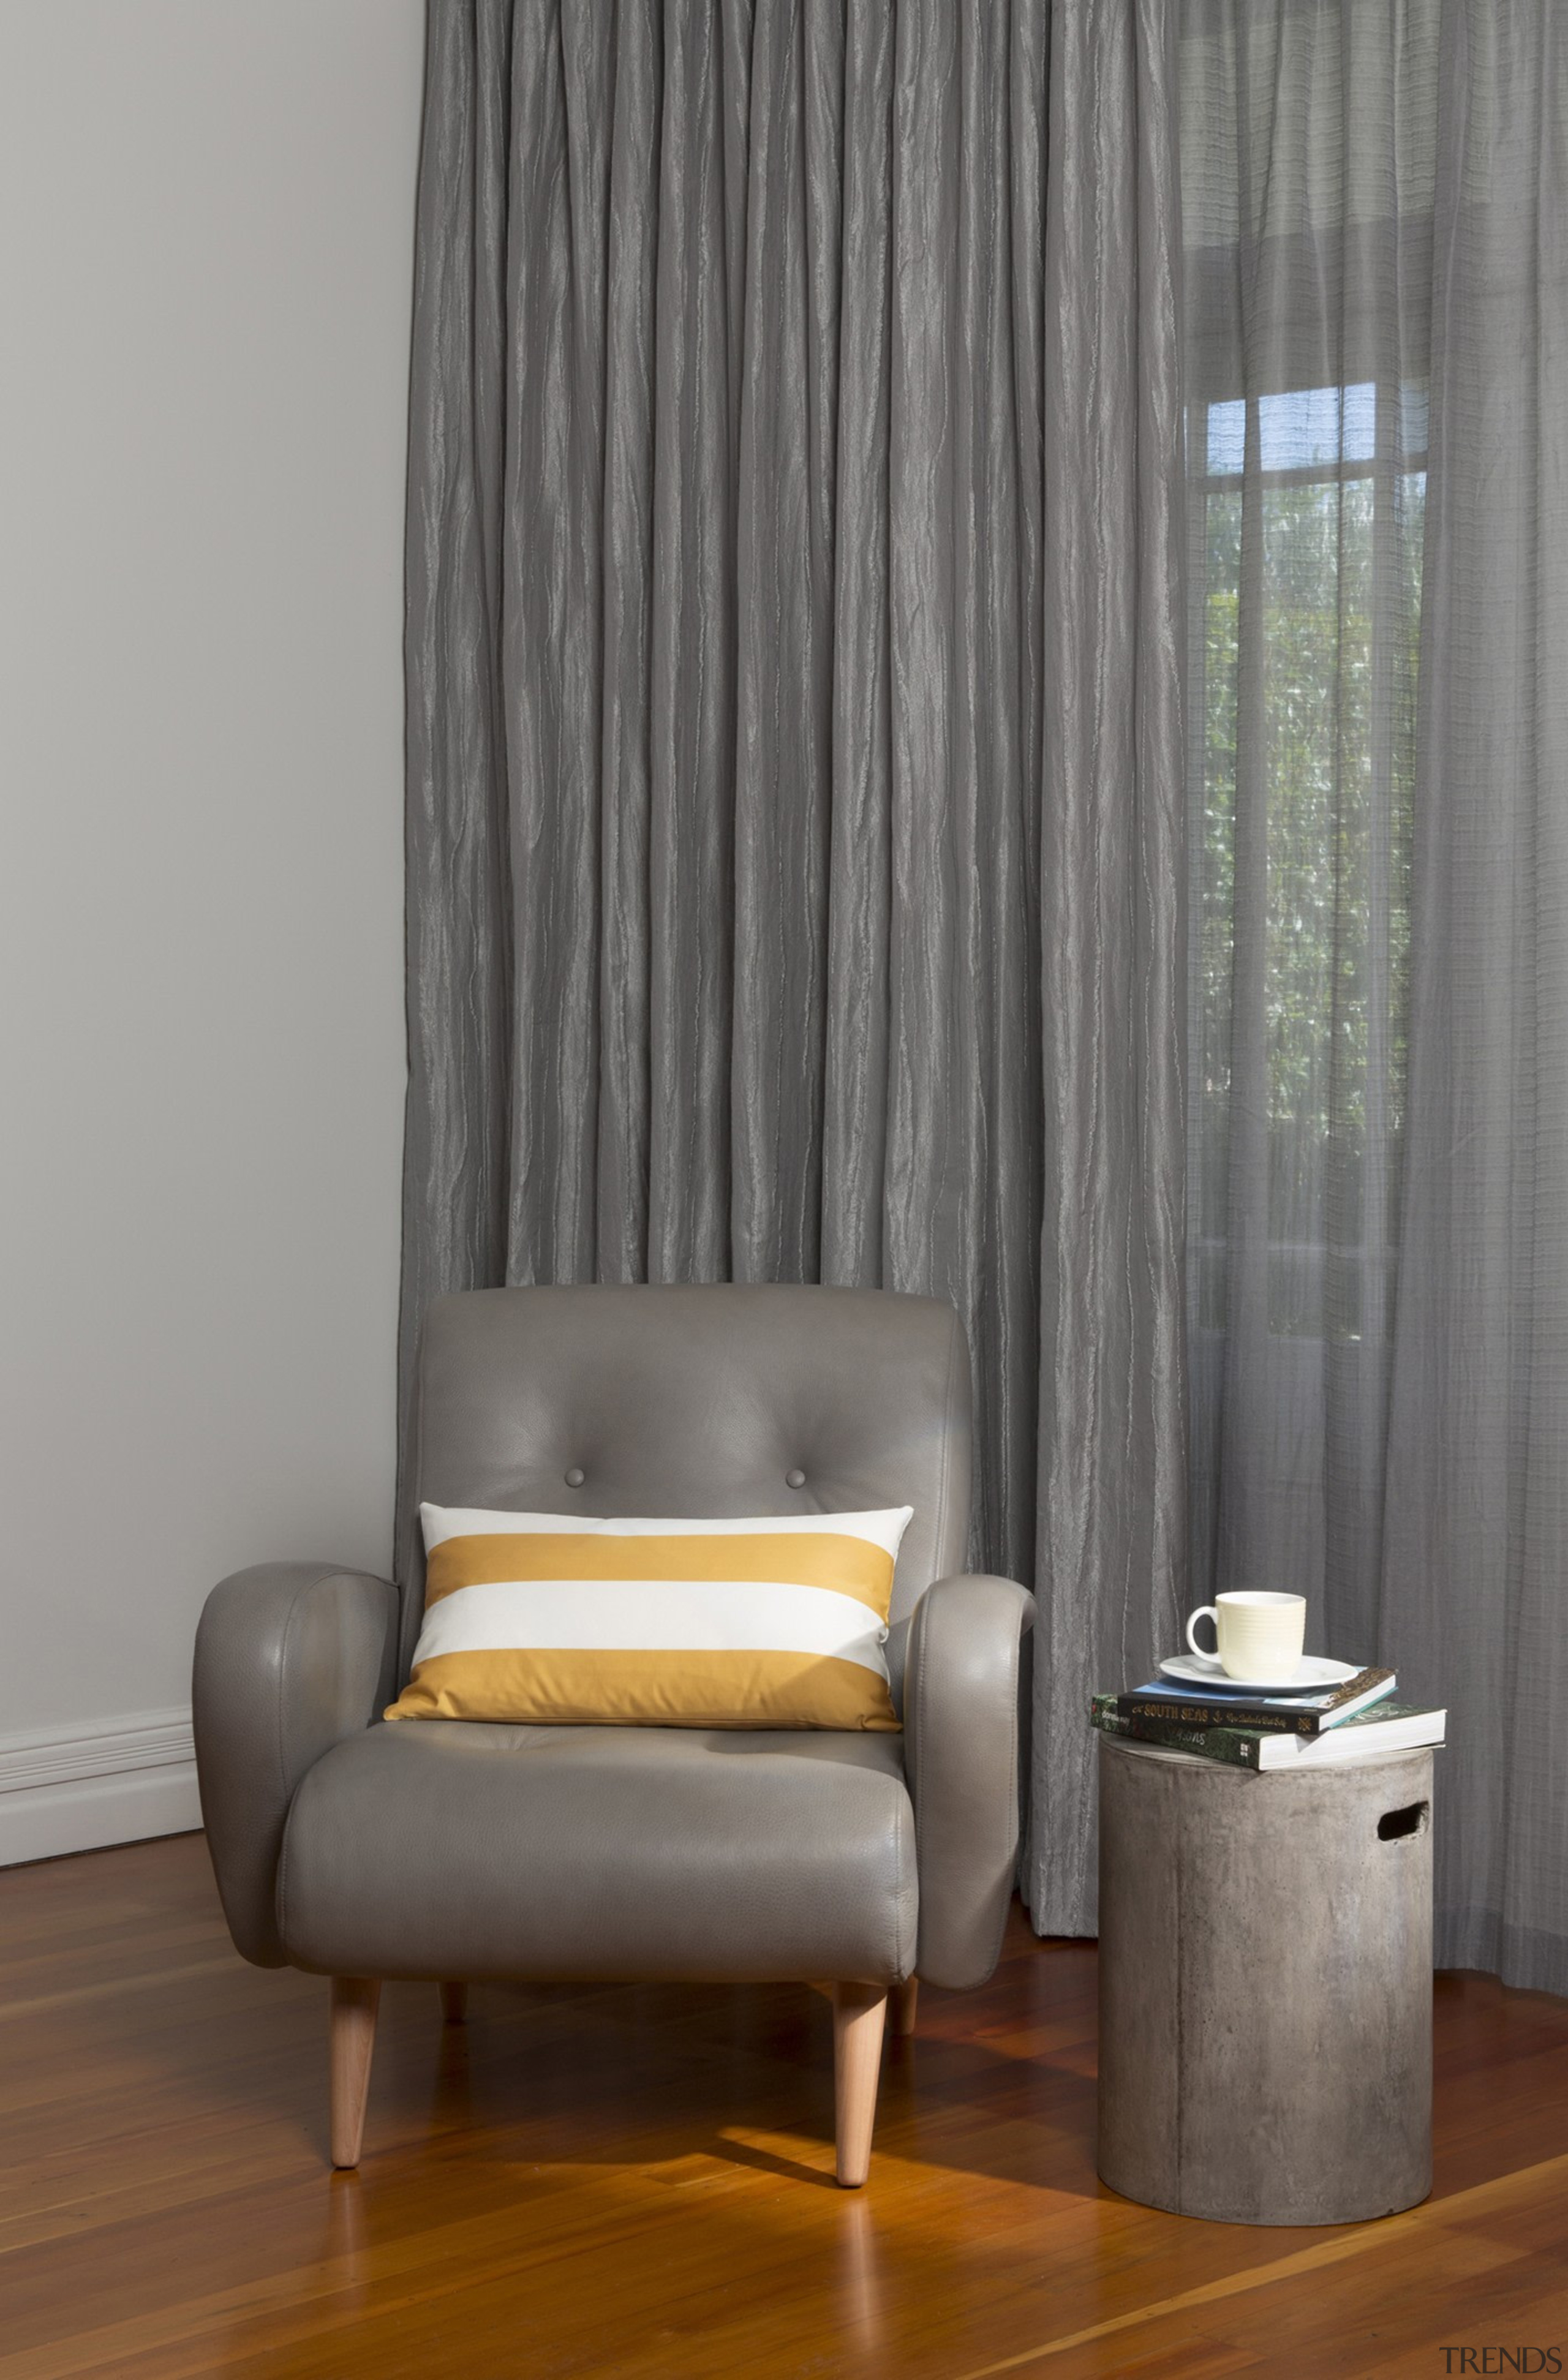 Harrisons Curtains - Harrisons Curtains - chair | chair, couch, curtain, floor, furniture, home, interior design, living room, table, textile, wall, window, window covering, window treatment, gray